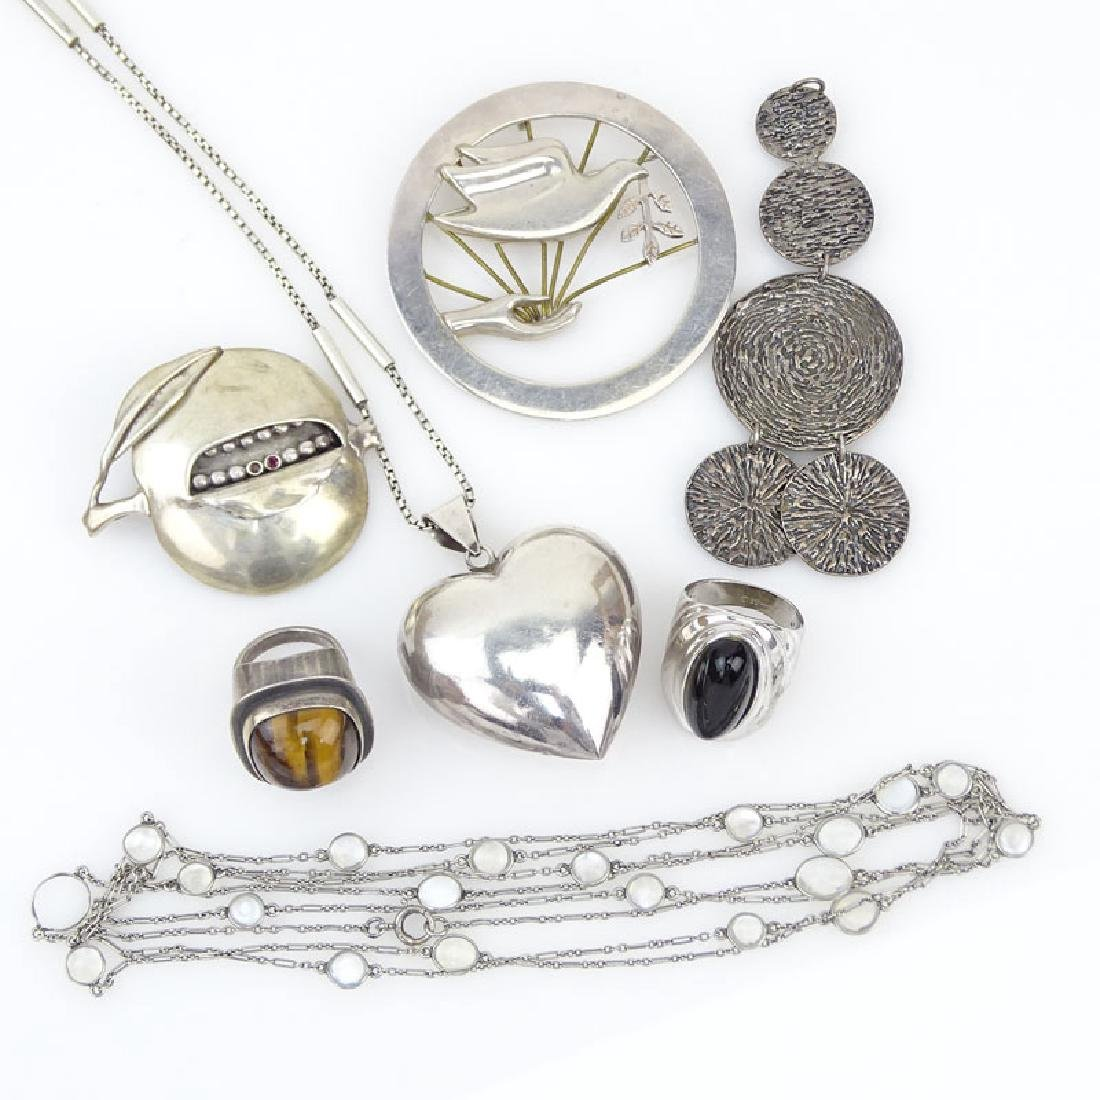 Seven (7) Piece Sterling Silver Jewelry Lot Including: